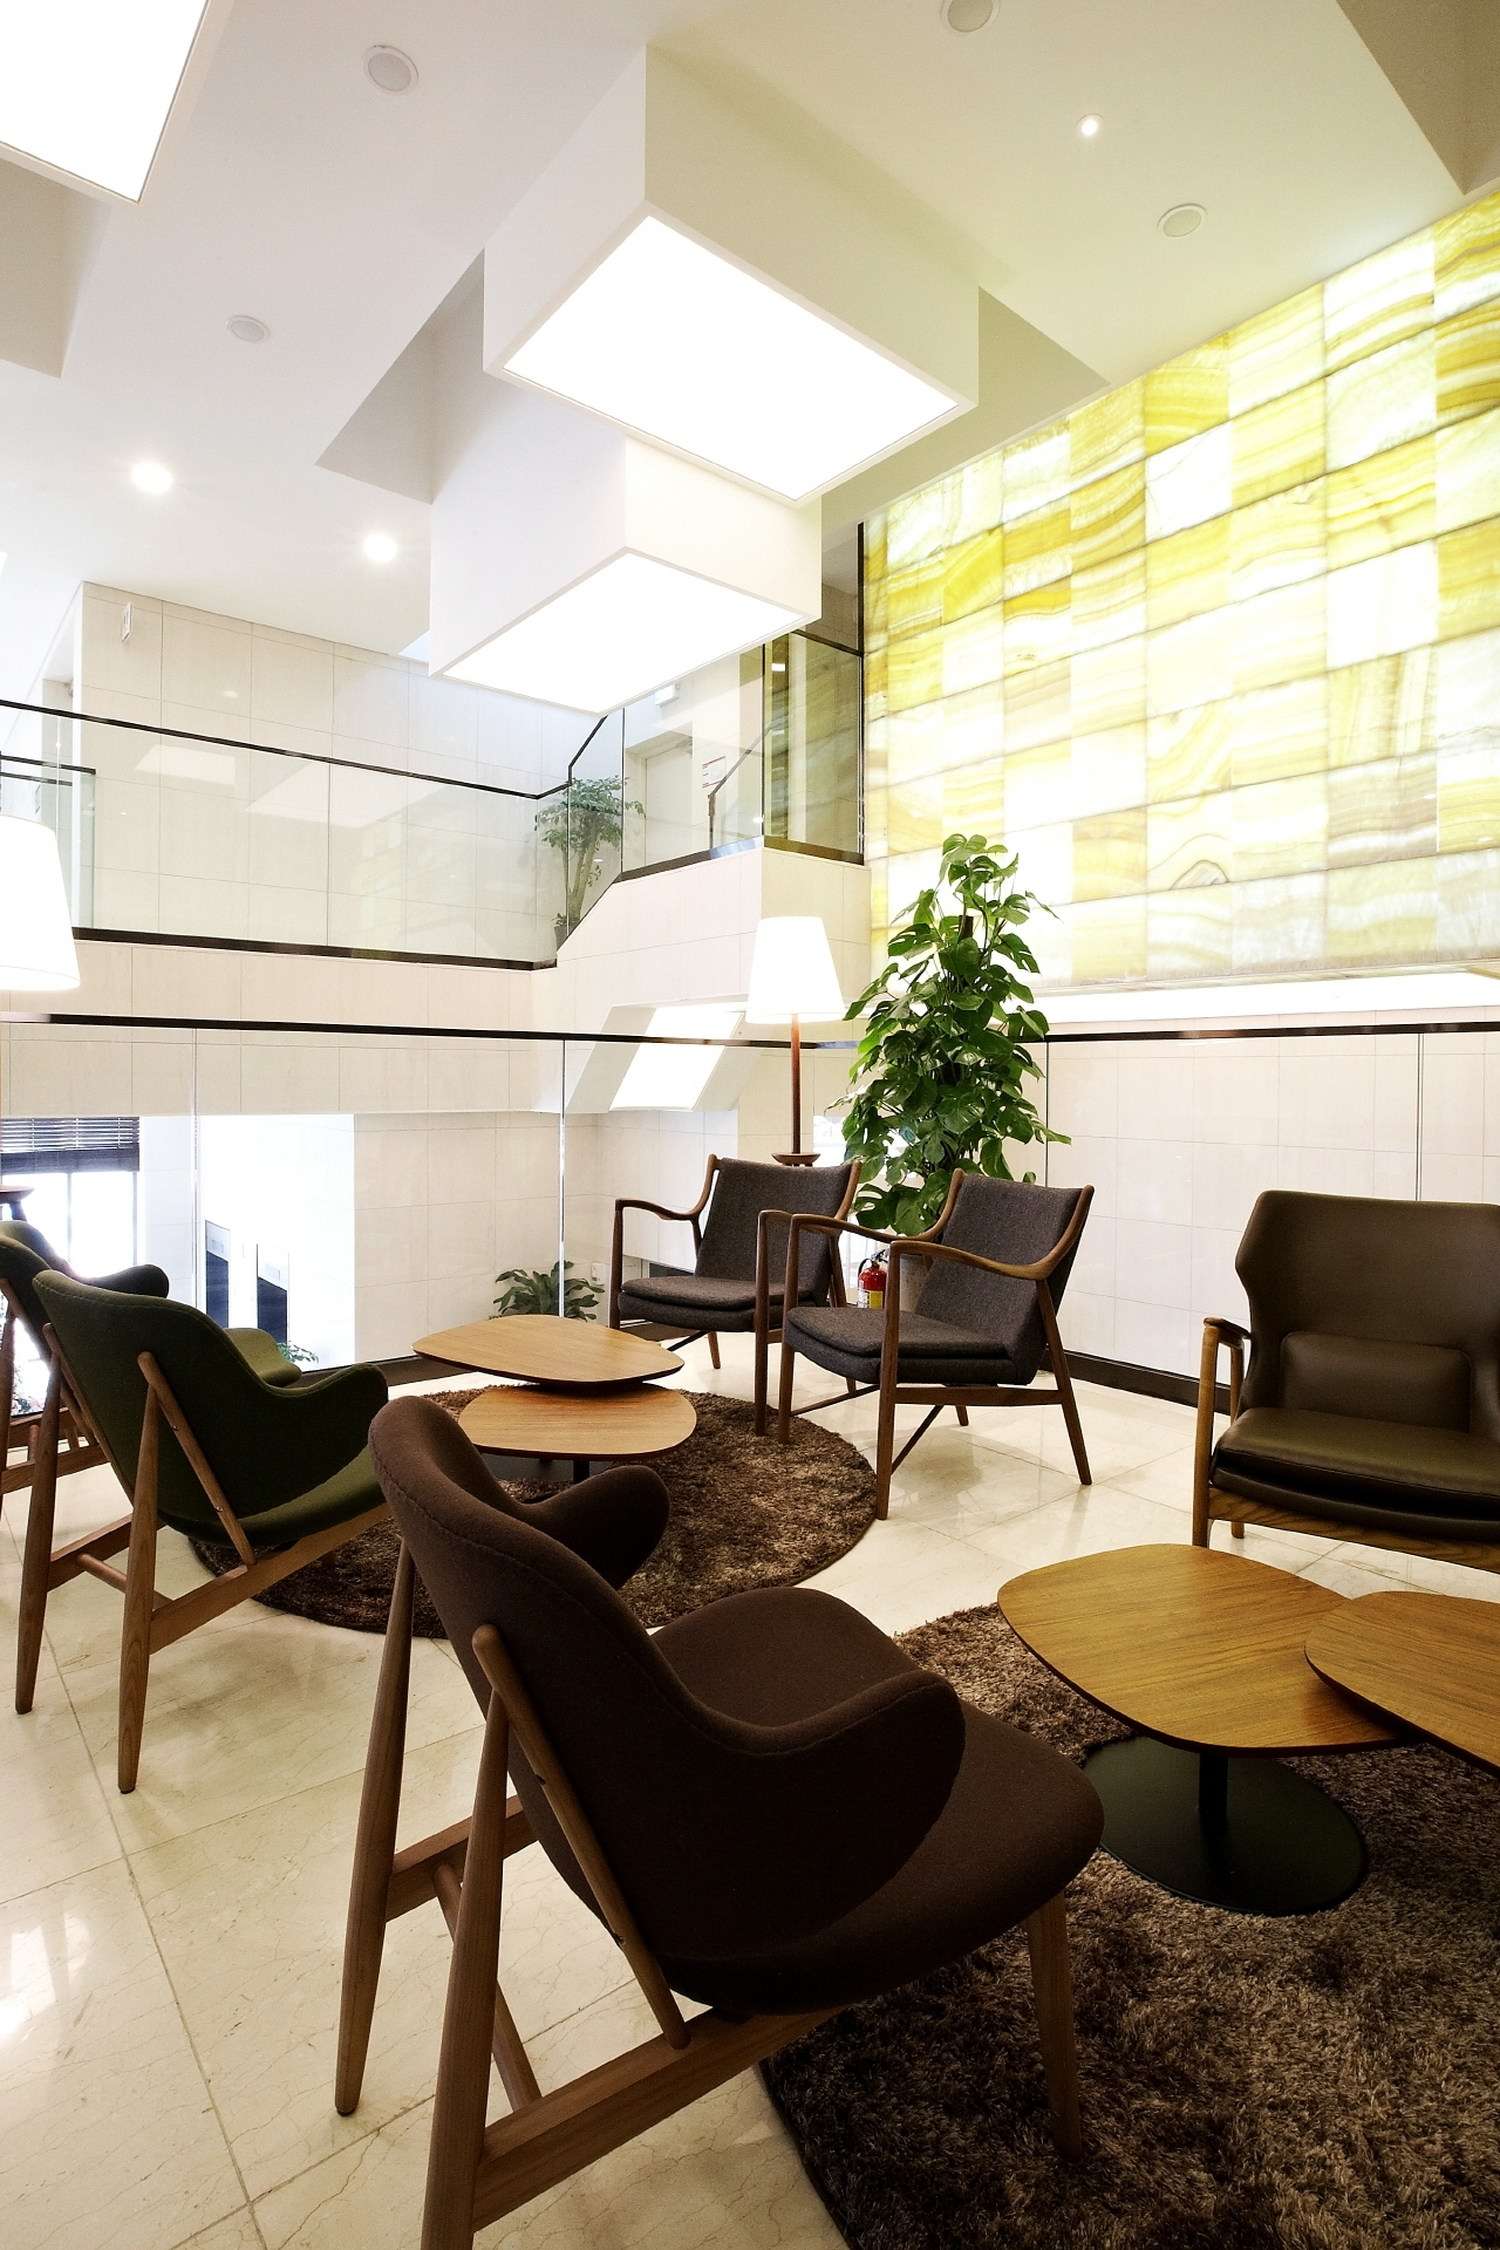 Boutique Hotel: Urban Boutique Hotel By BANG By MIN